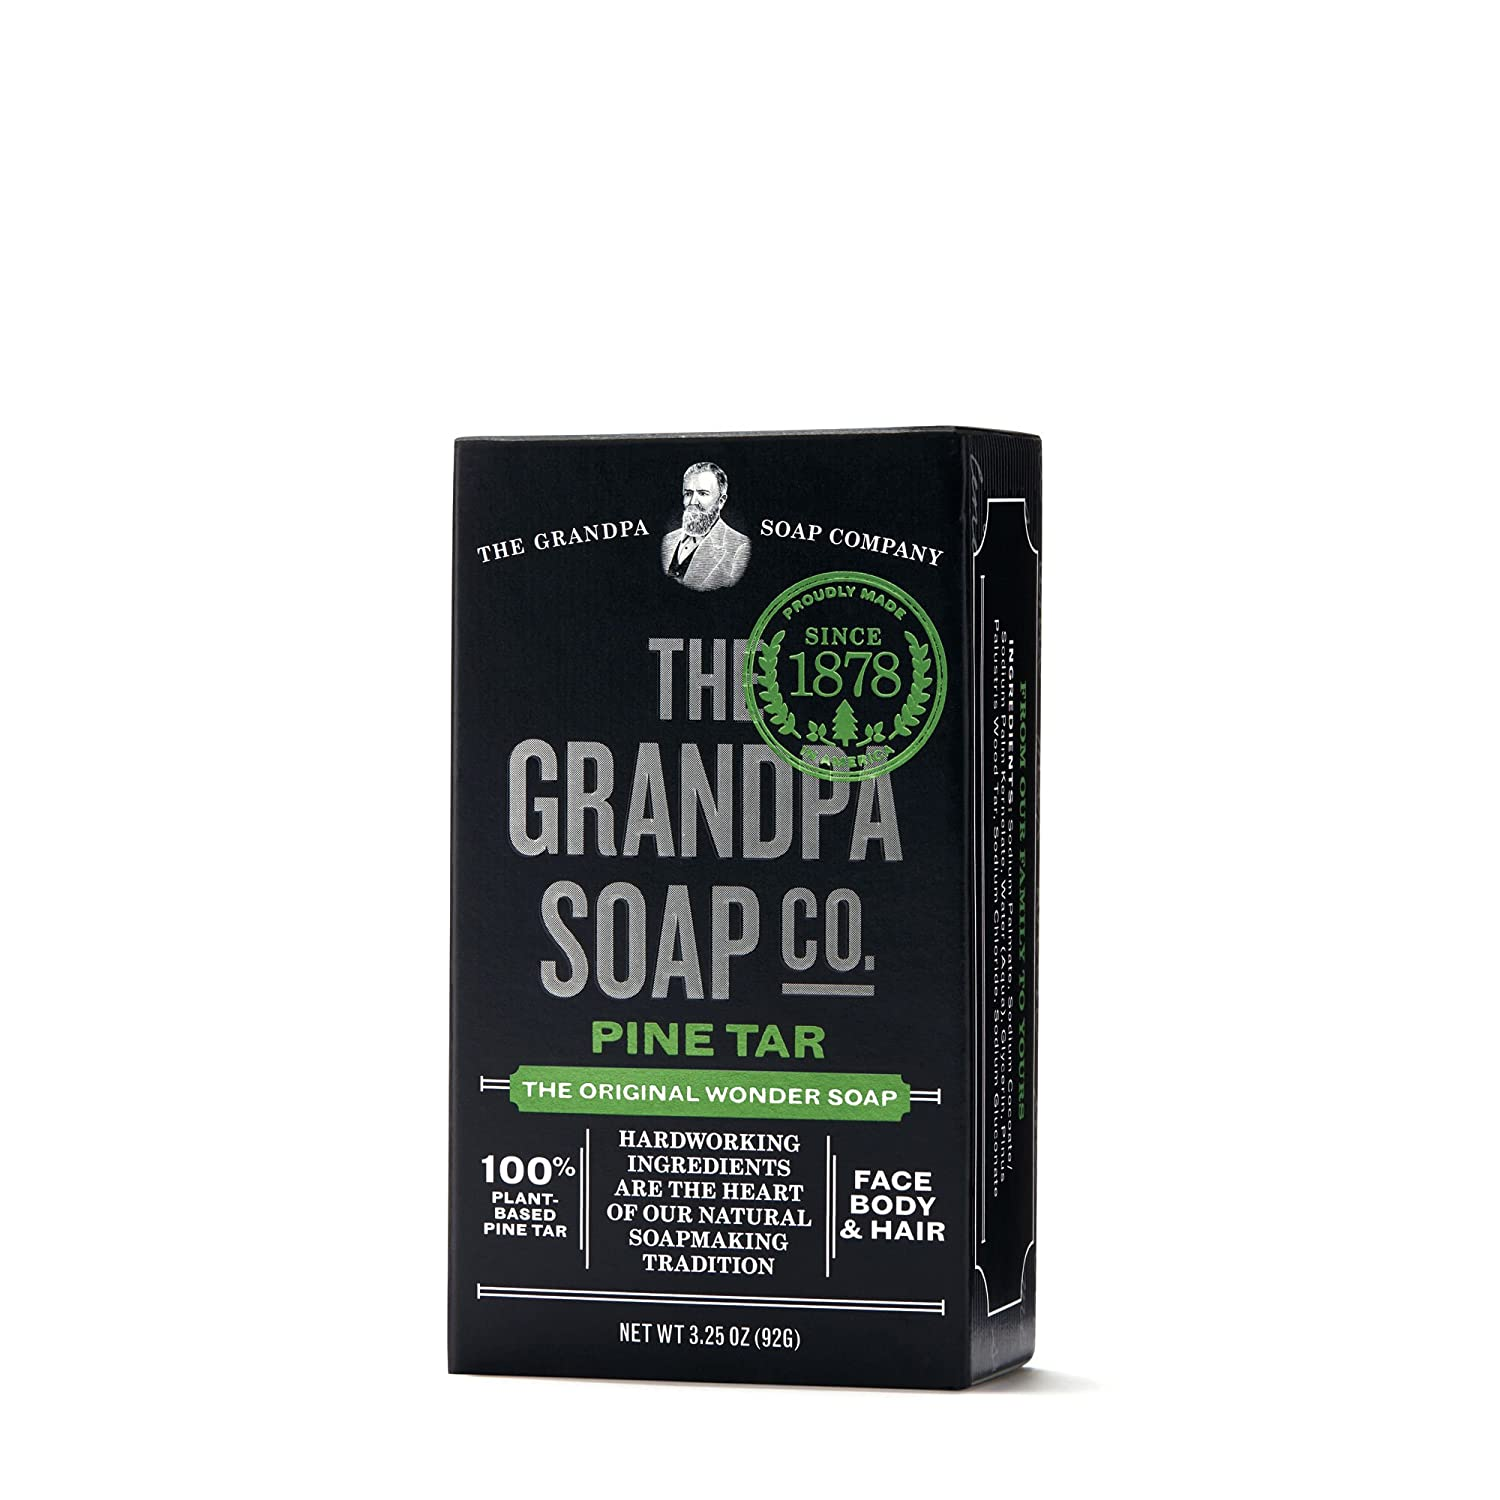 Pine Tar Soap 3 25 Oz Bar 6 Pack Amazon Co Uk Business Industry Science